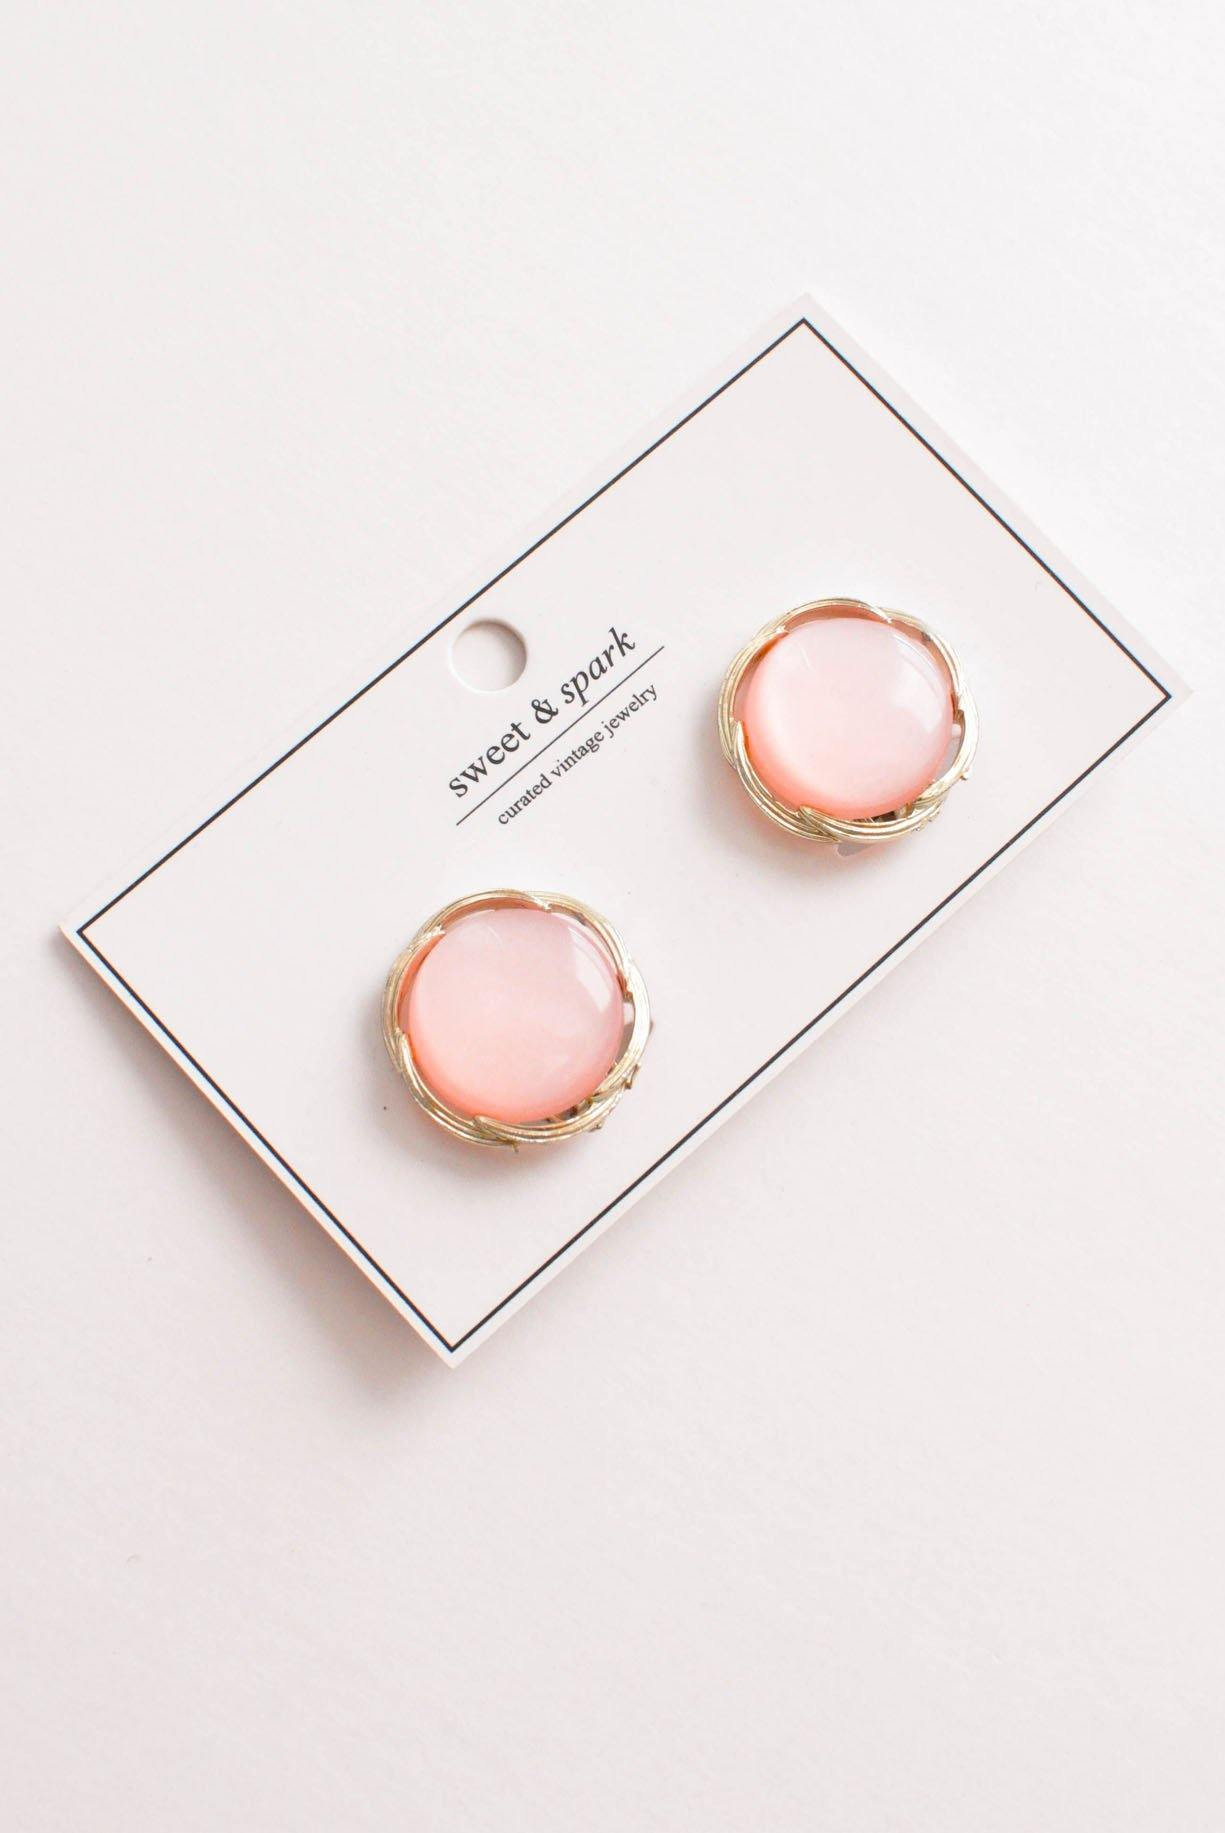 Vintage Lisner pink coin earrings from Sweet & Spark.